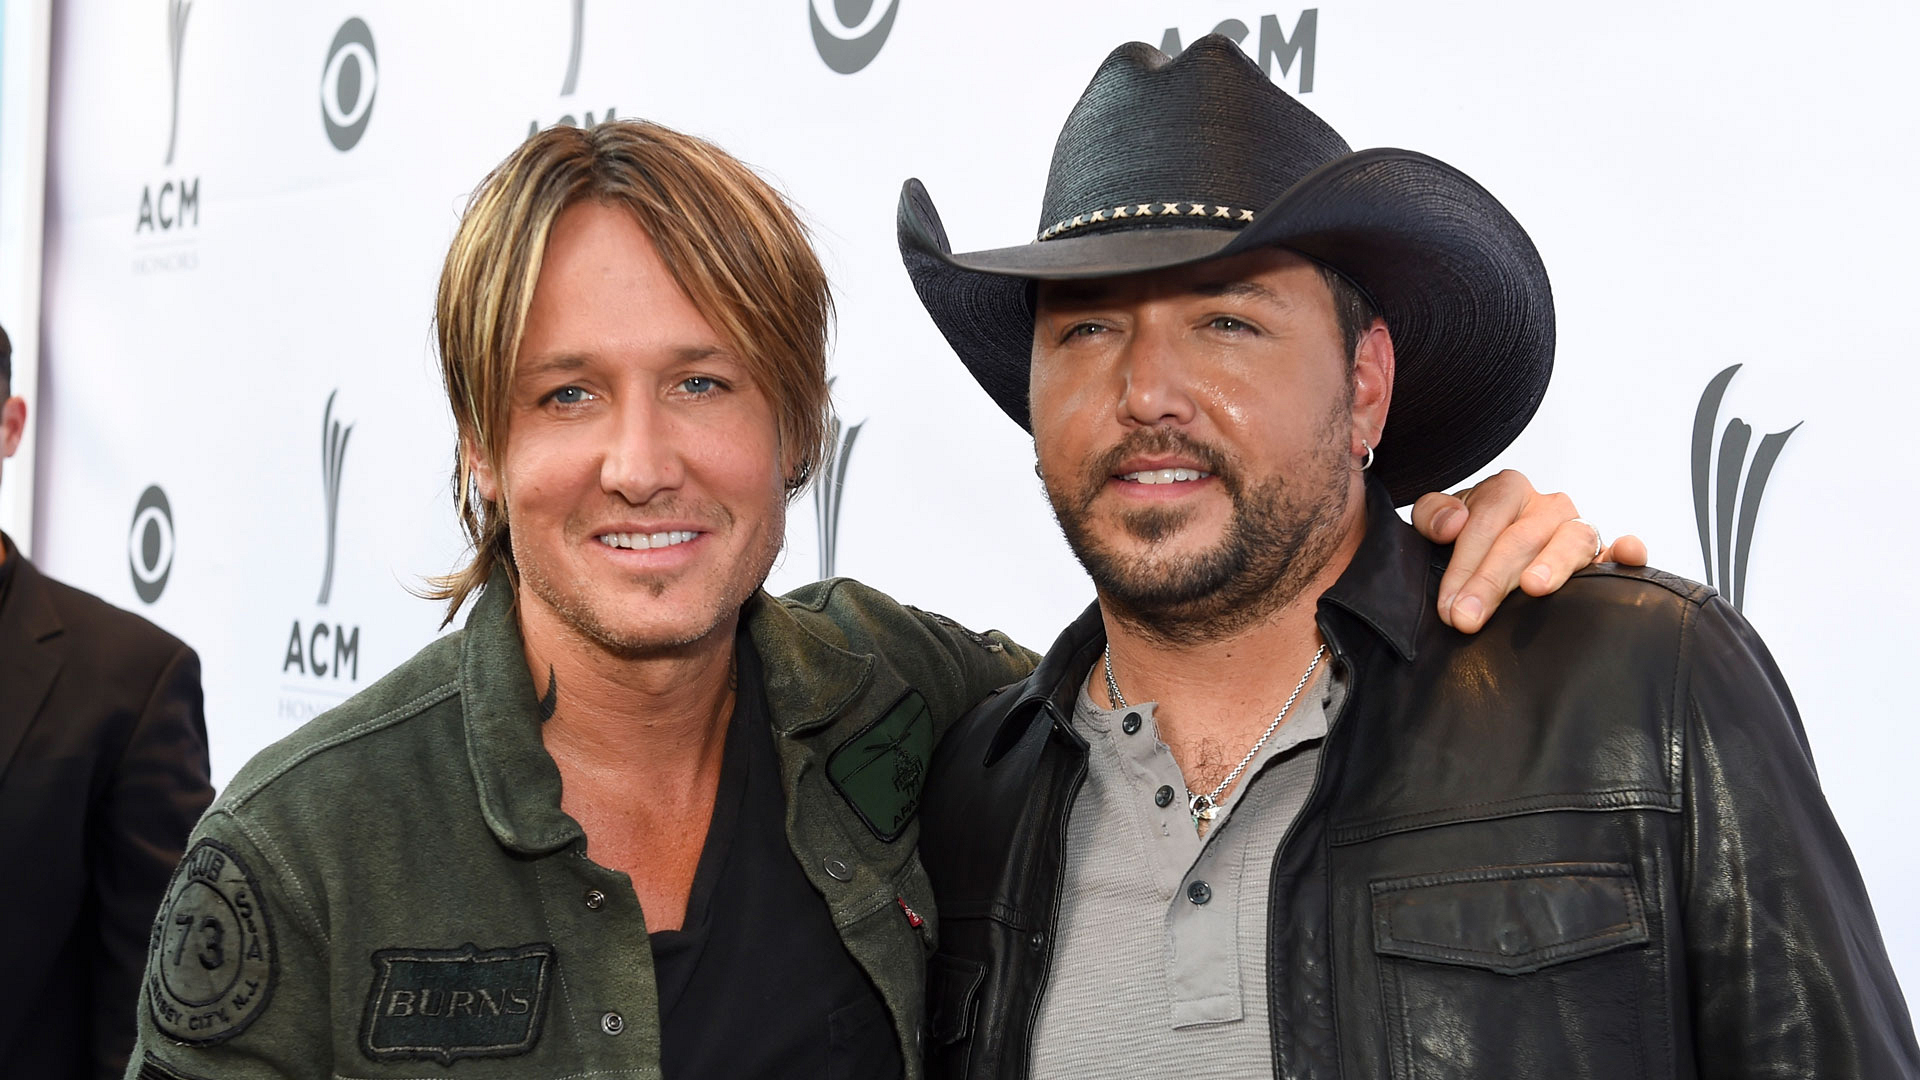 Keith Urban and Jason Aldean bro out before ACM Honors.